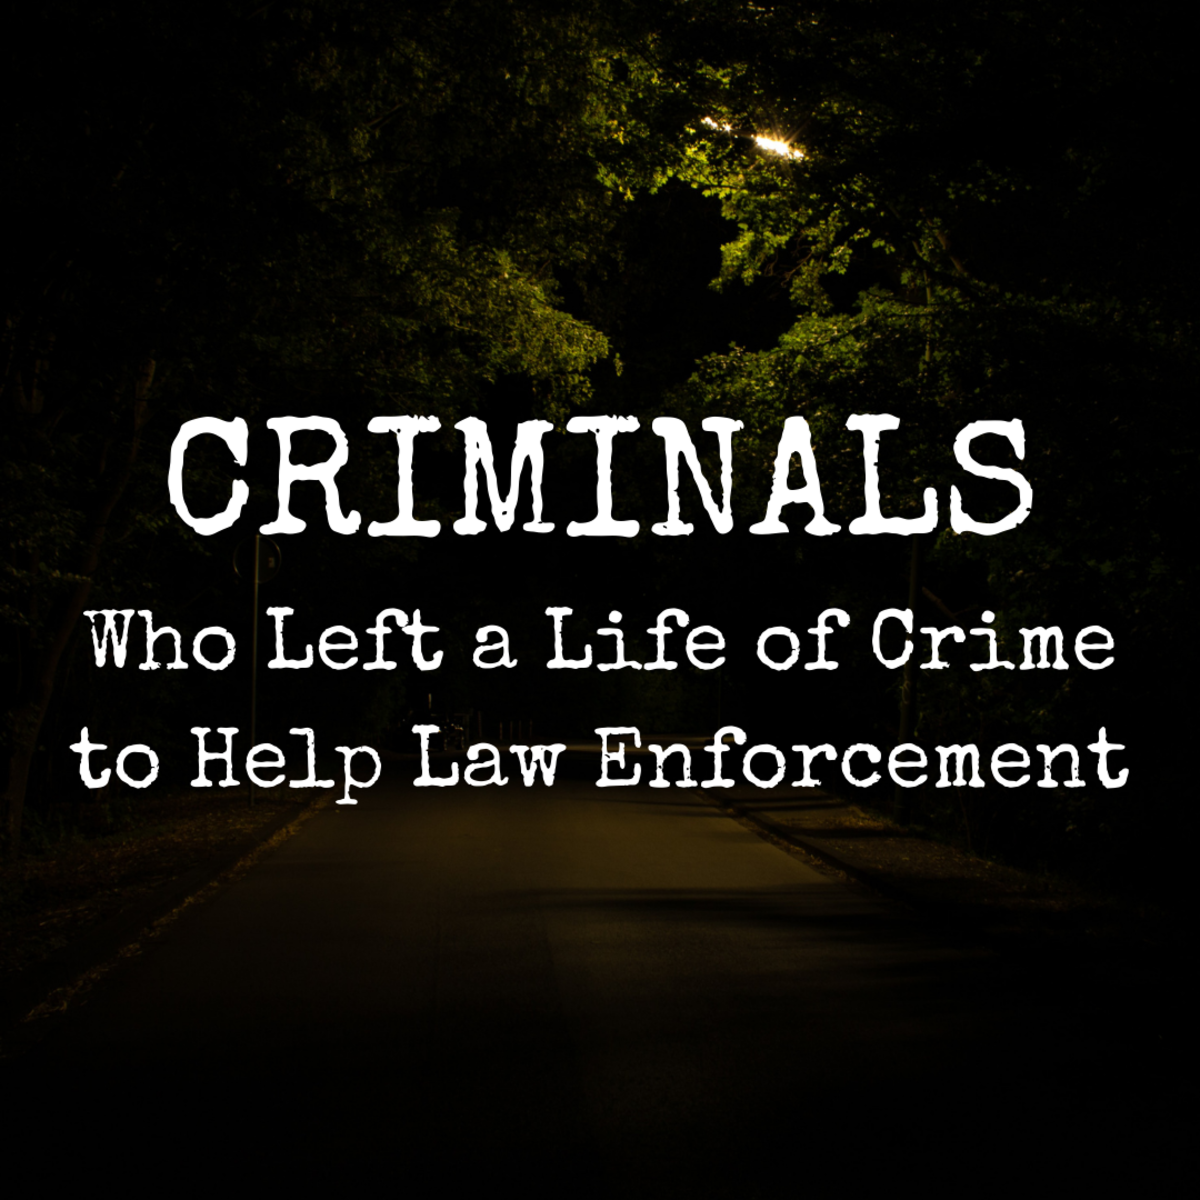 Learn about five former criminals who later changed and helped law enforcement stop crime.